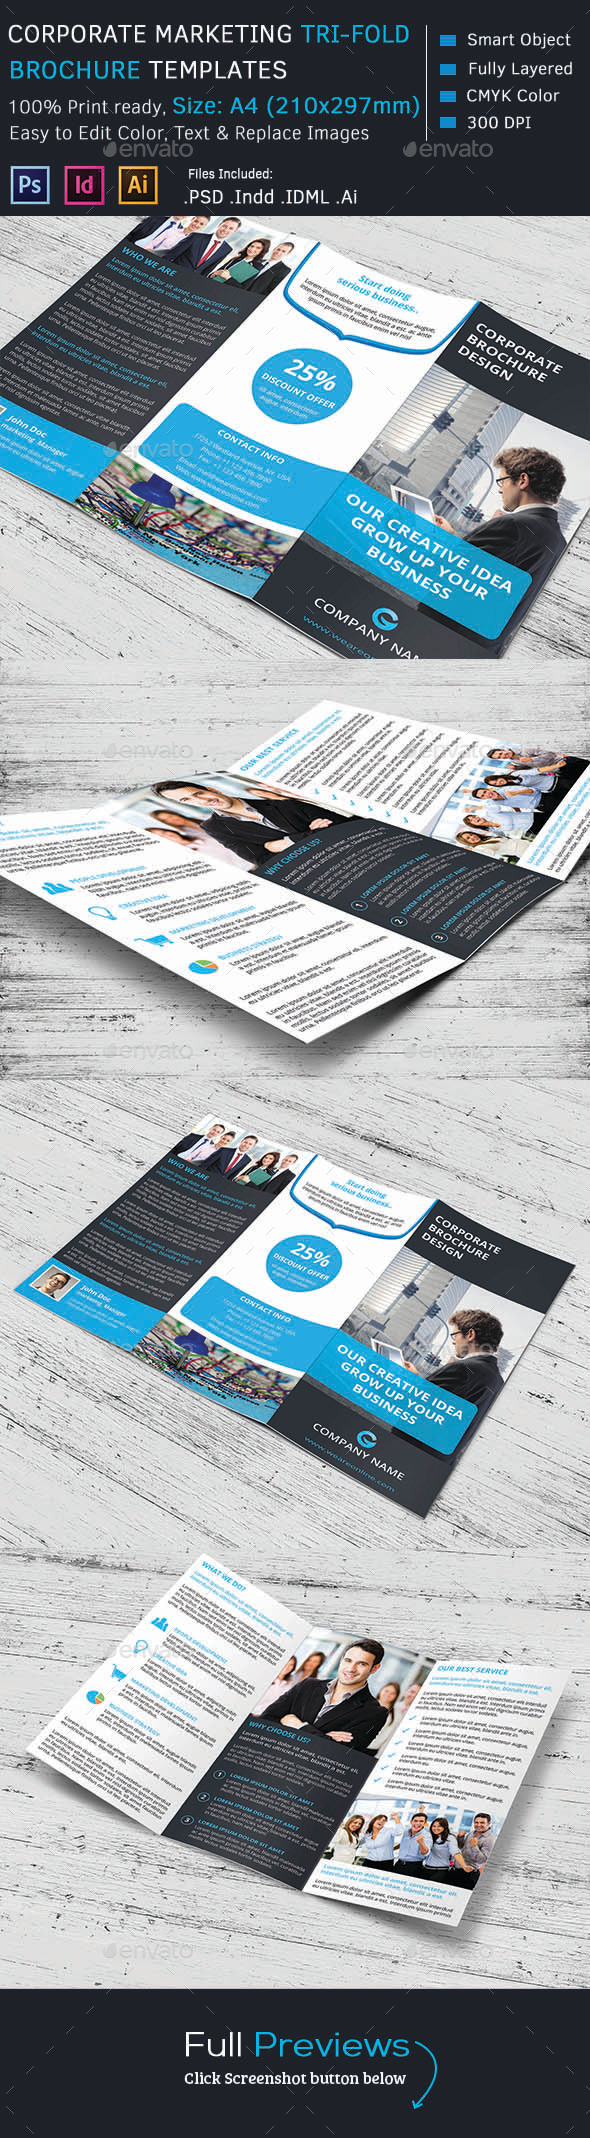 GraphicRiver Corporate Marketing Tri-Fold Brochure 10319464